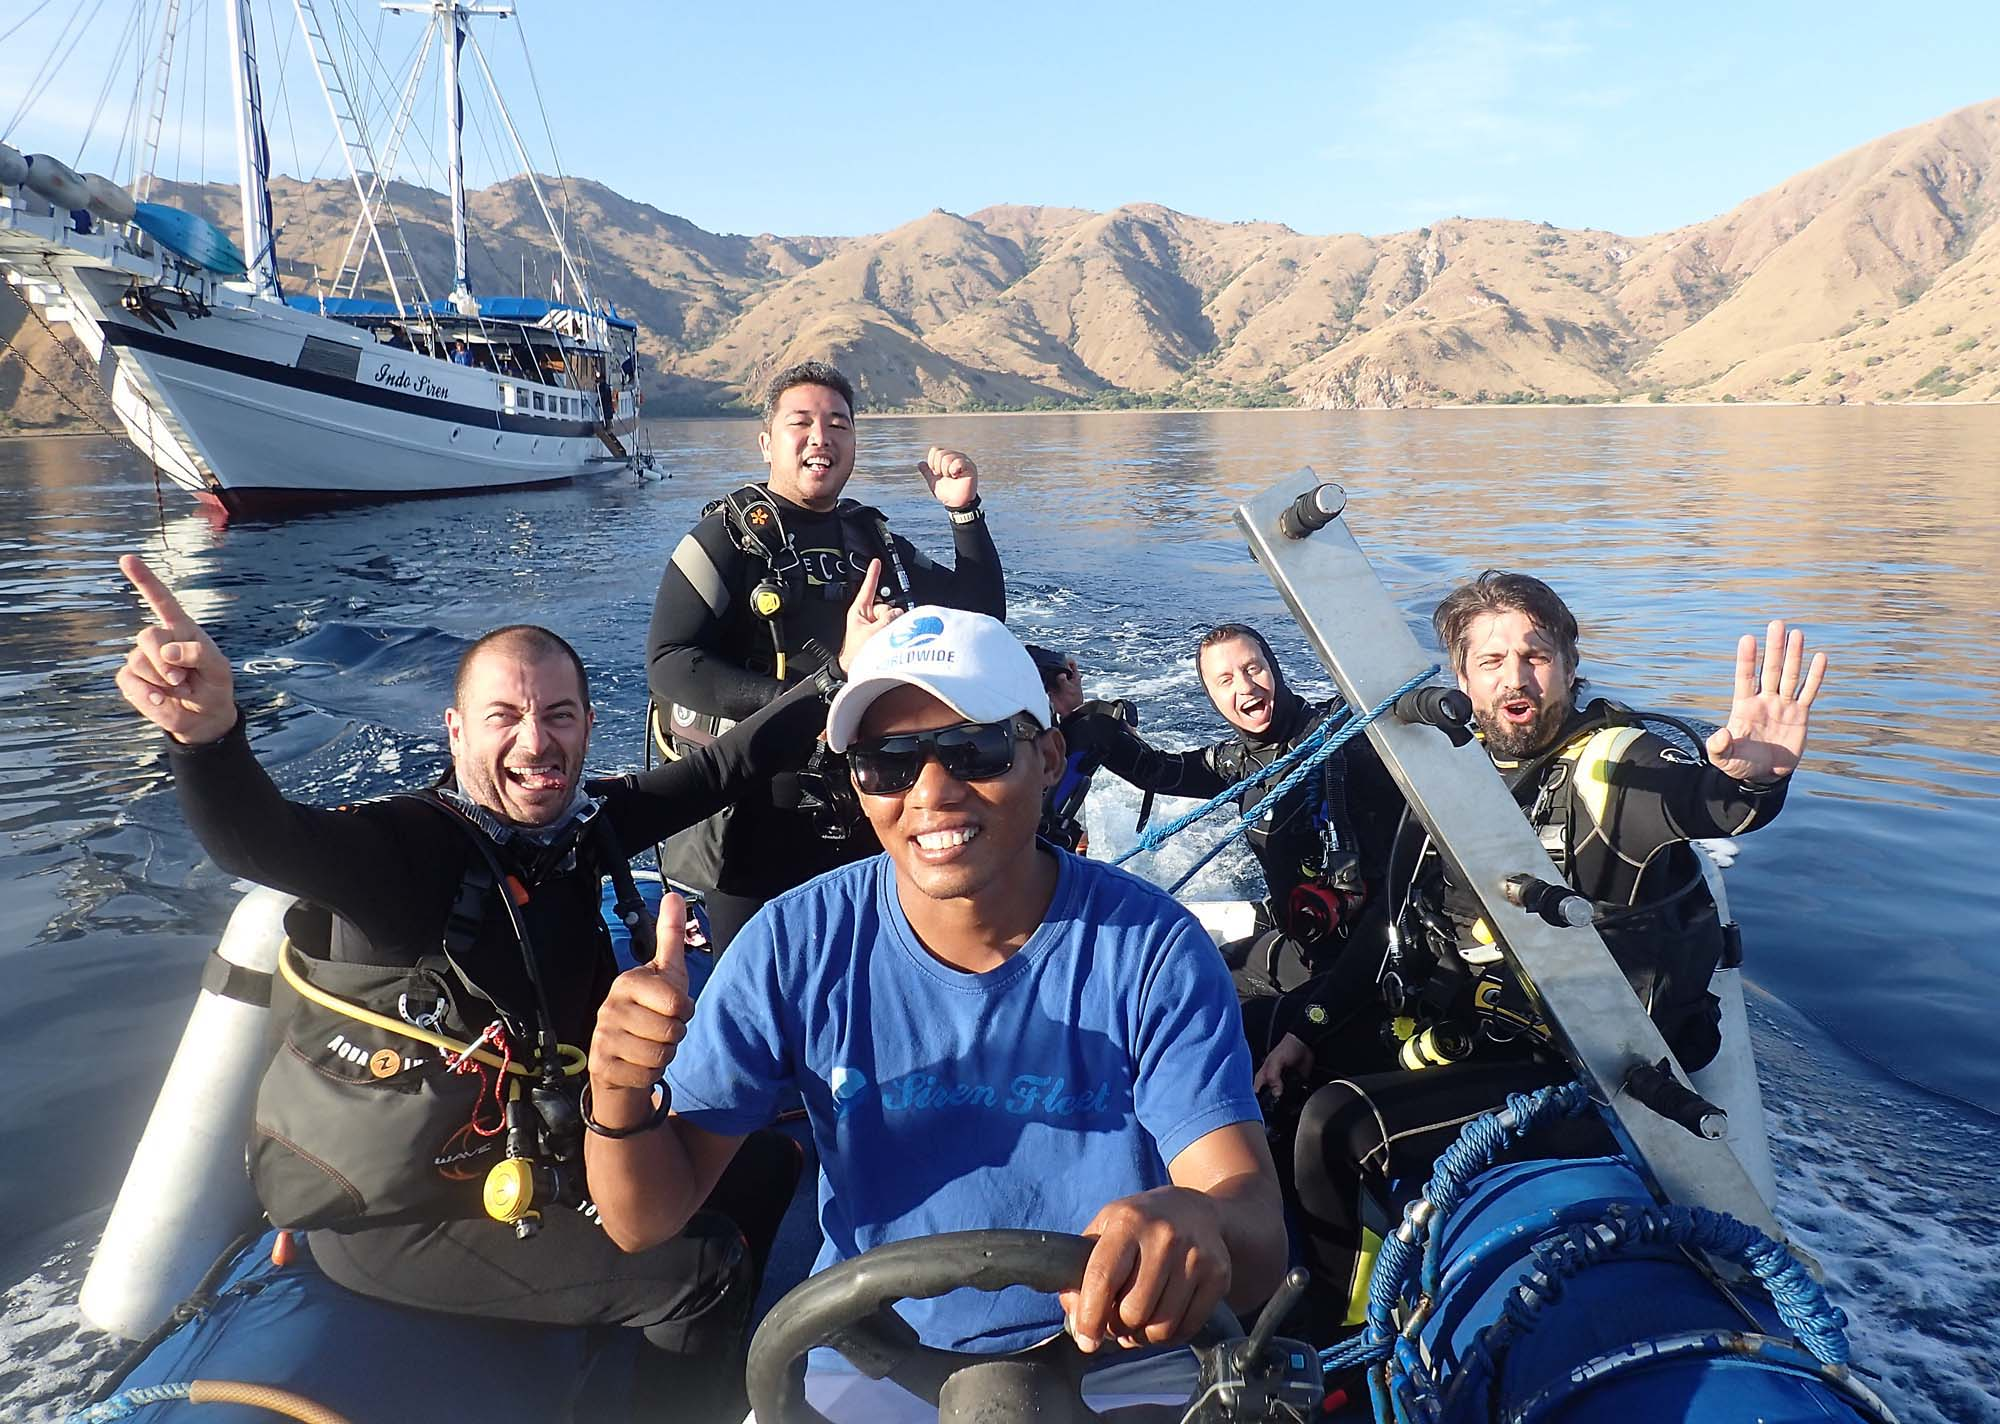 Going diving! Komodo 2015